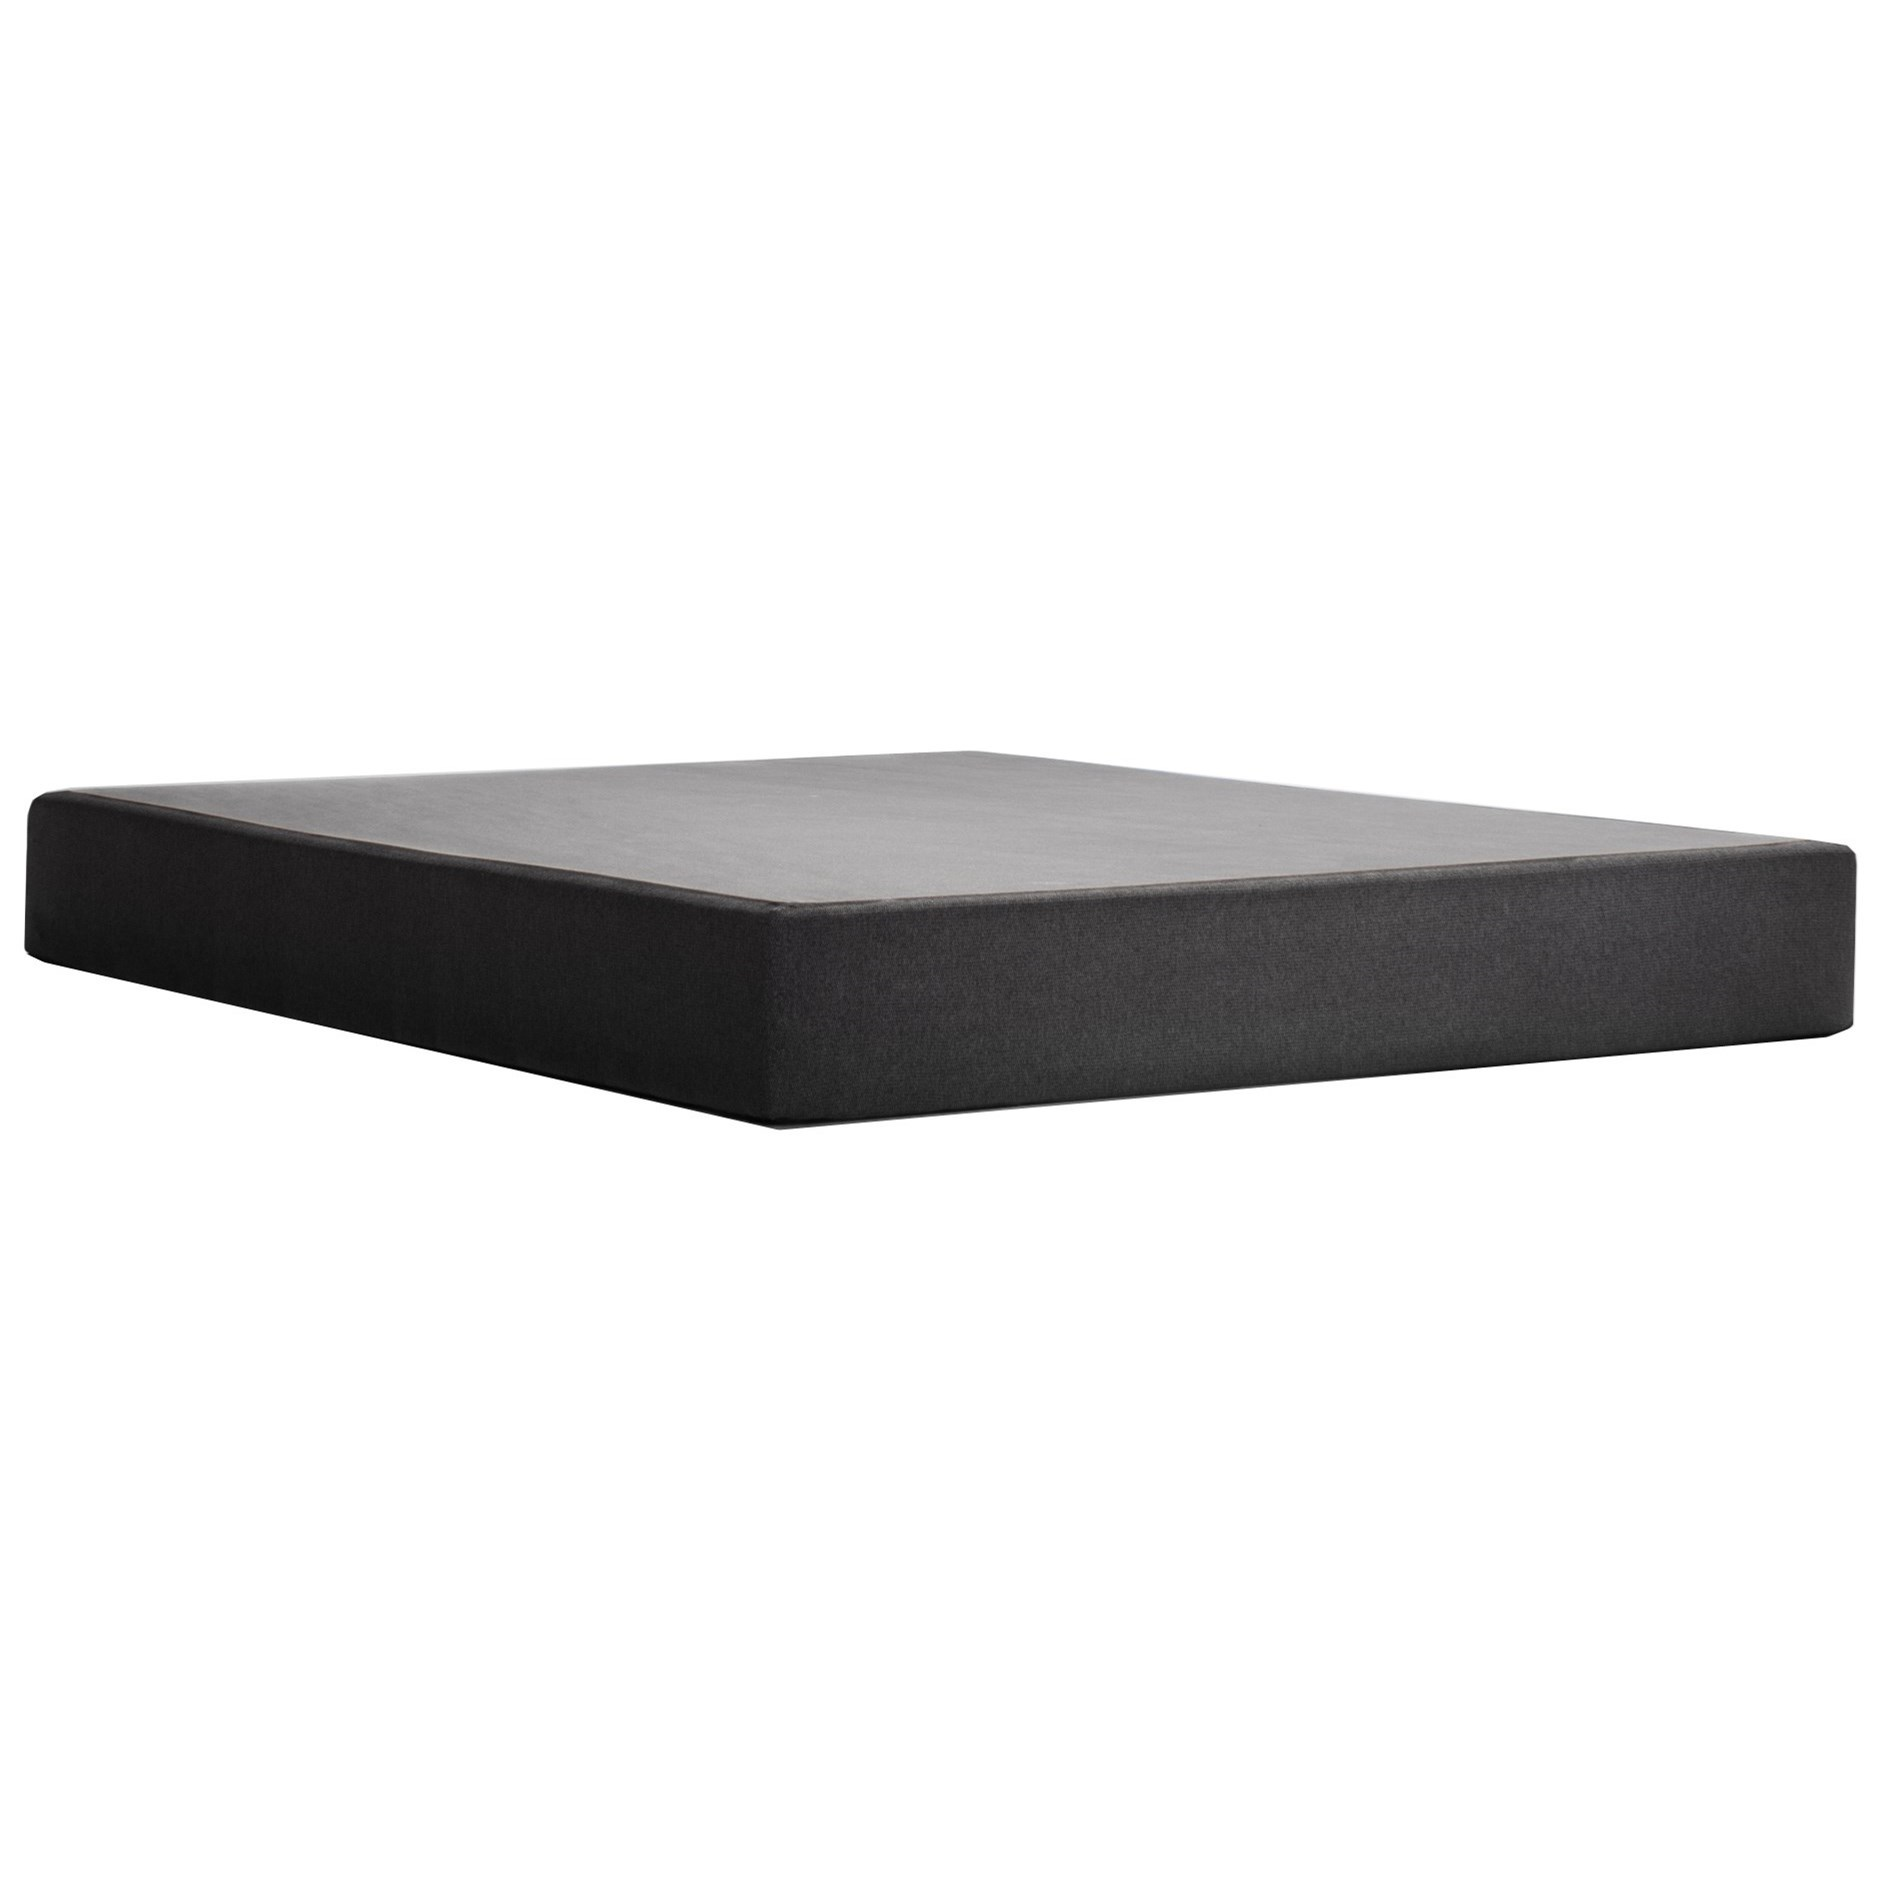 "2018 Tempur Foundations Twin Standard Base 9"" Height by Tempur-Pedic® at Darvin Furniture"